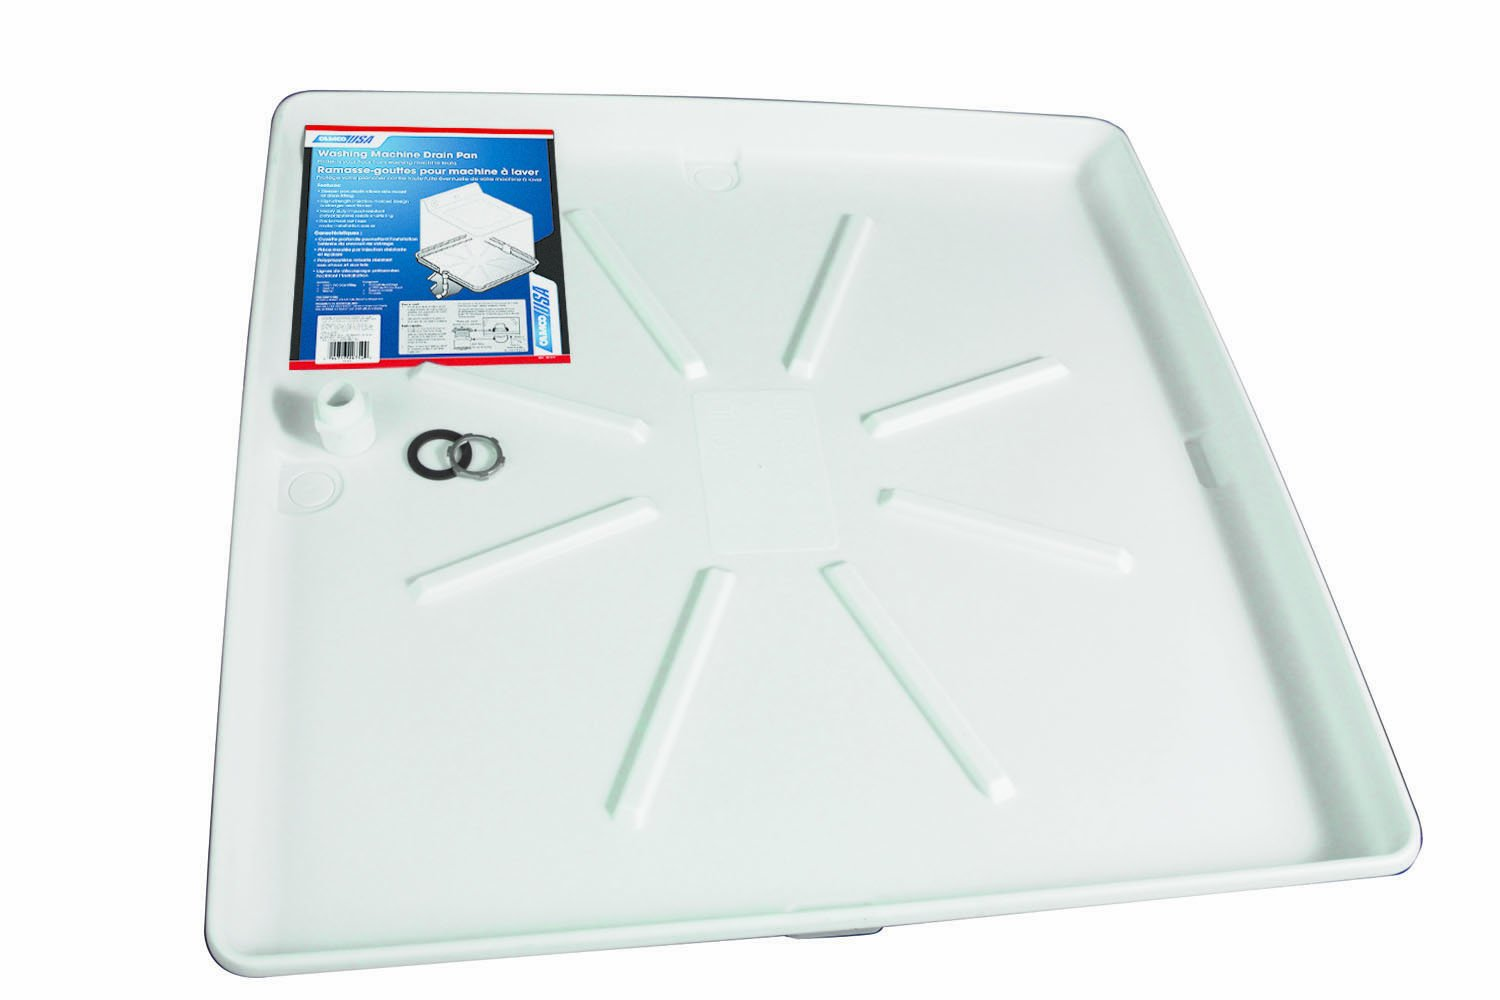 Camco Washing Machine Drain Pan w/PVC Fitting 32''OD x 30'', Collects Water Leakage From Underneath Washing Machine and Prevents Floor Damage- White (20752) by Camco